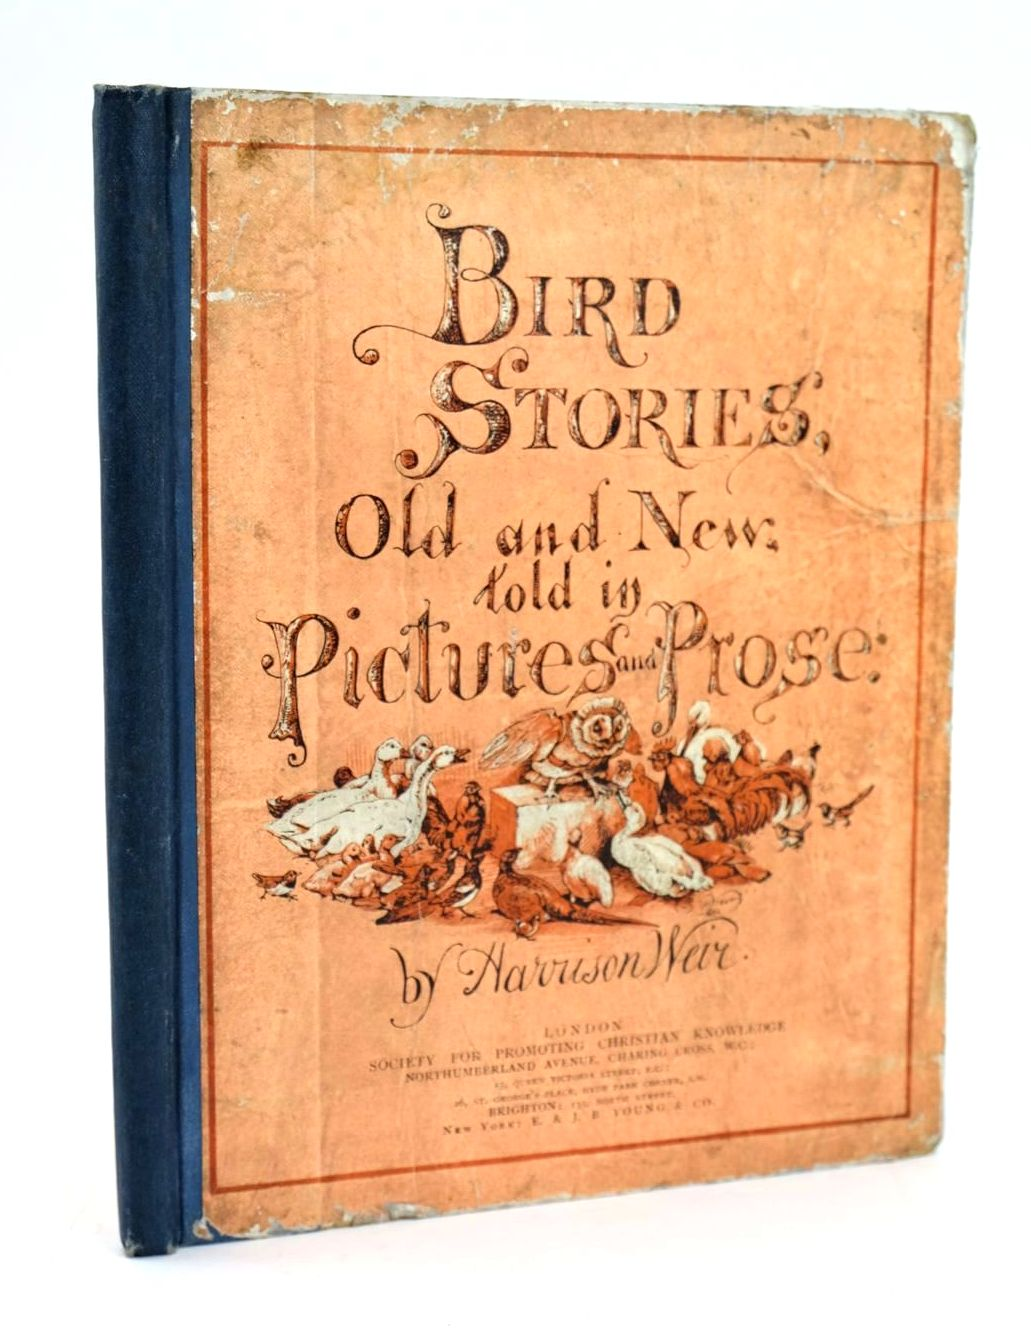 Photo of BIRD STORIES OLD AND NEW, TOLD IN PICTURES AND PROSE- Stock Number: 1319206